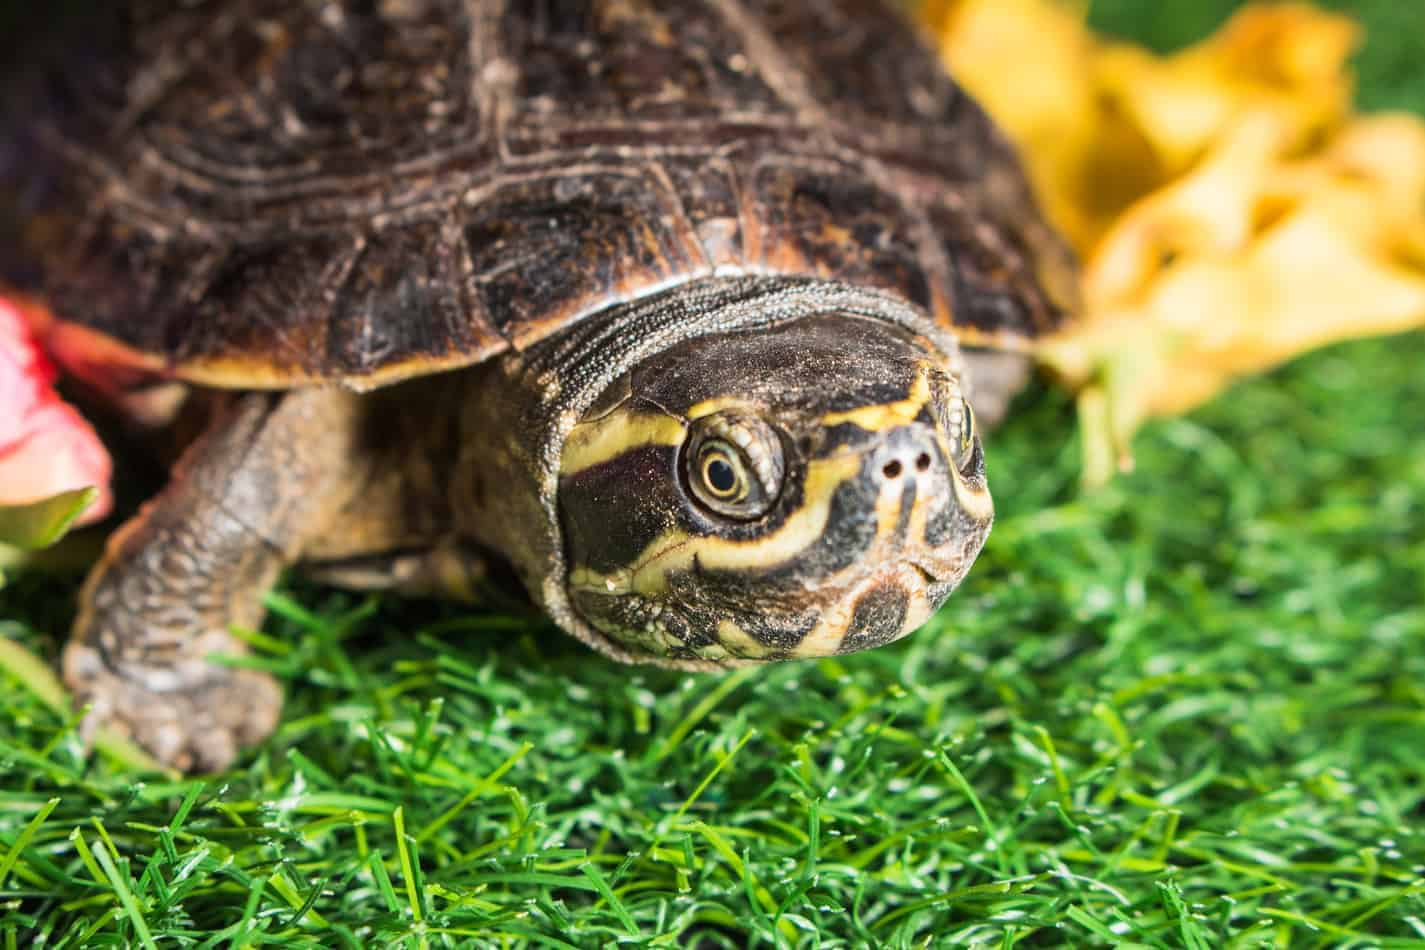 Can Snakes and Turtles Live Together?